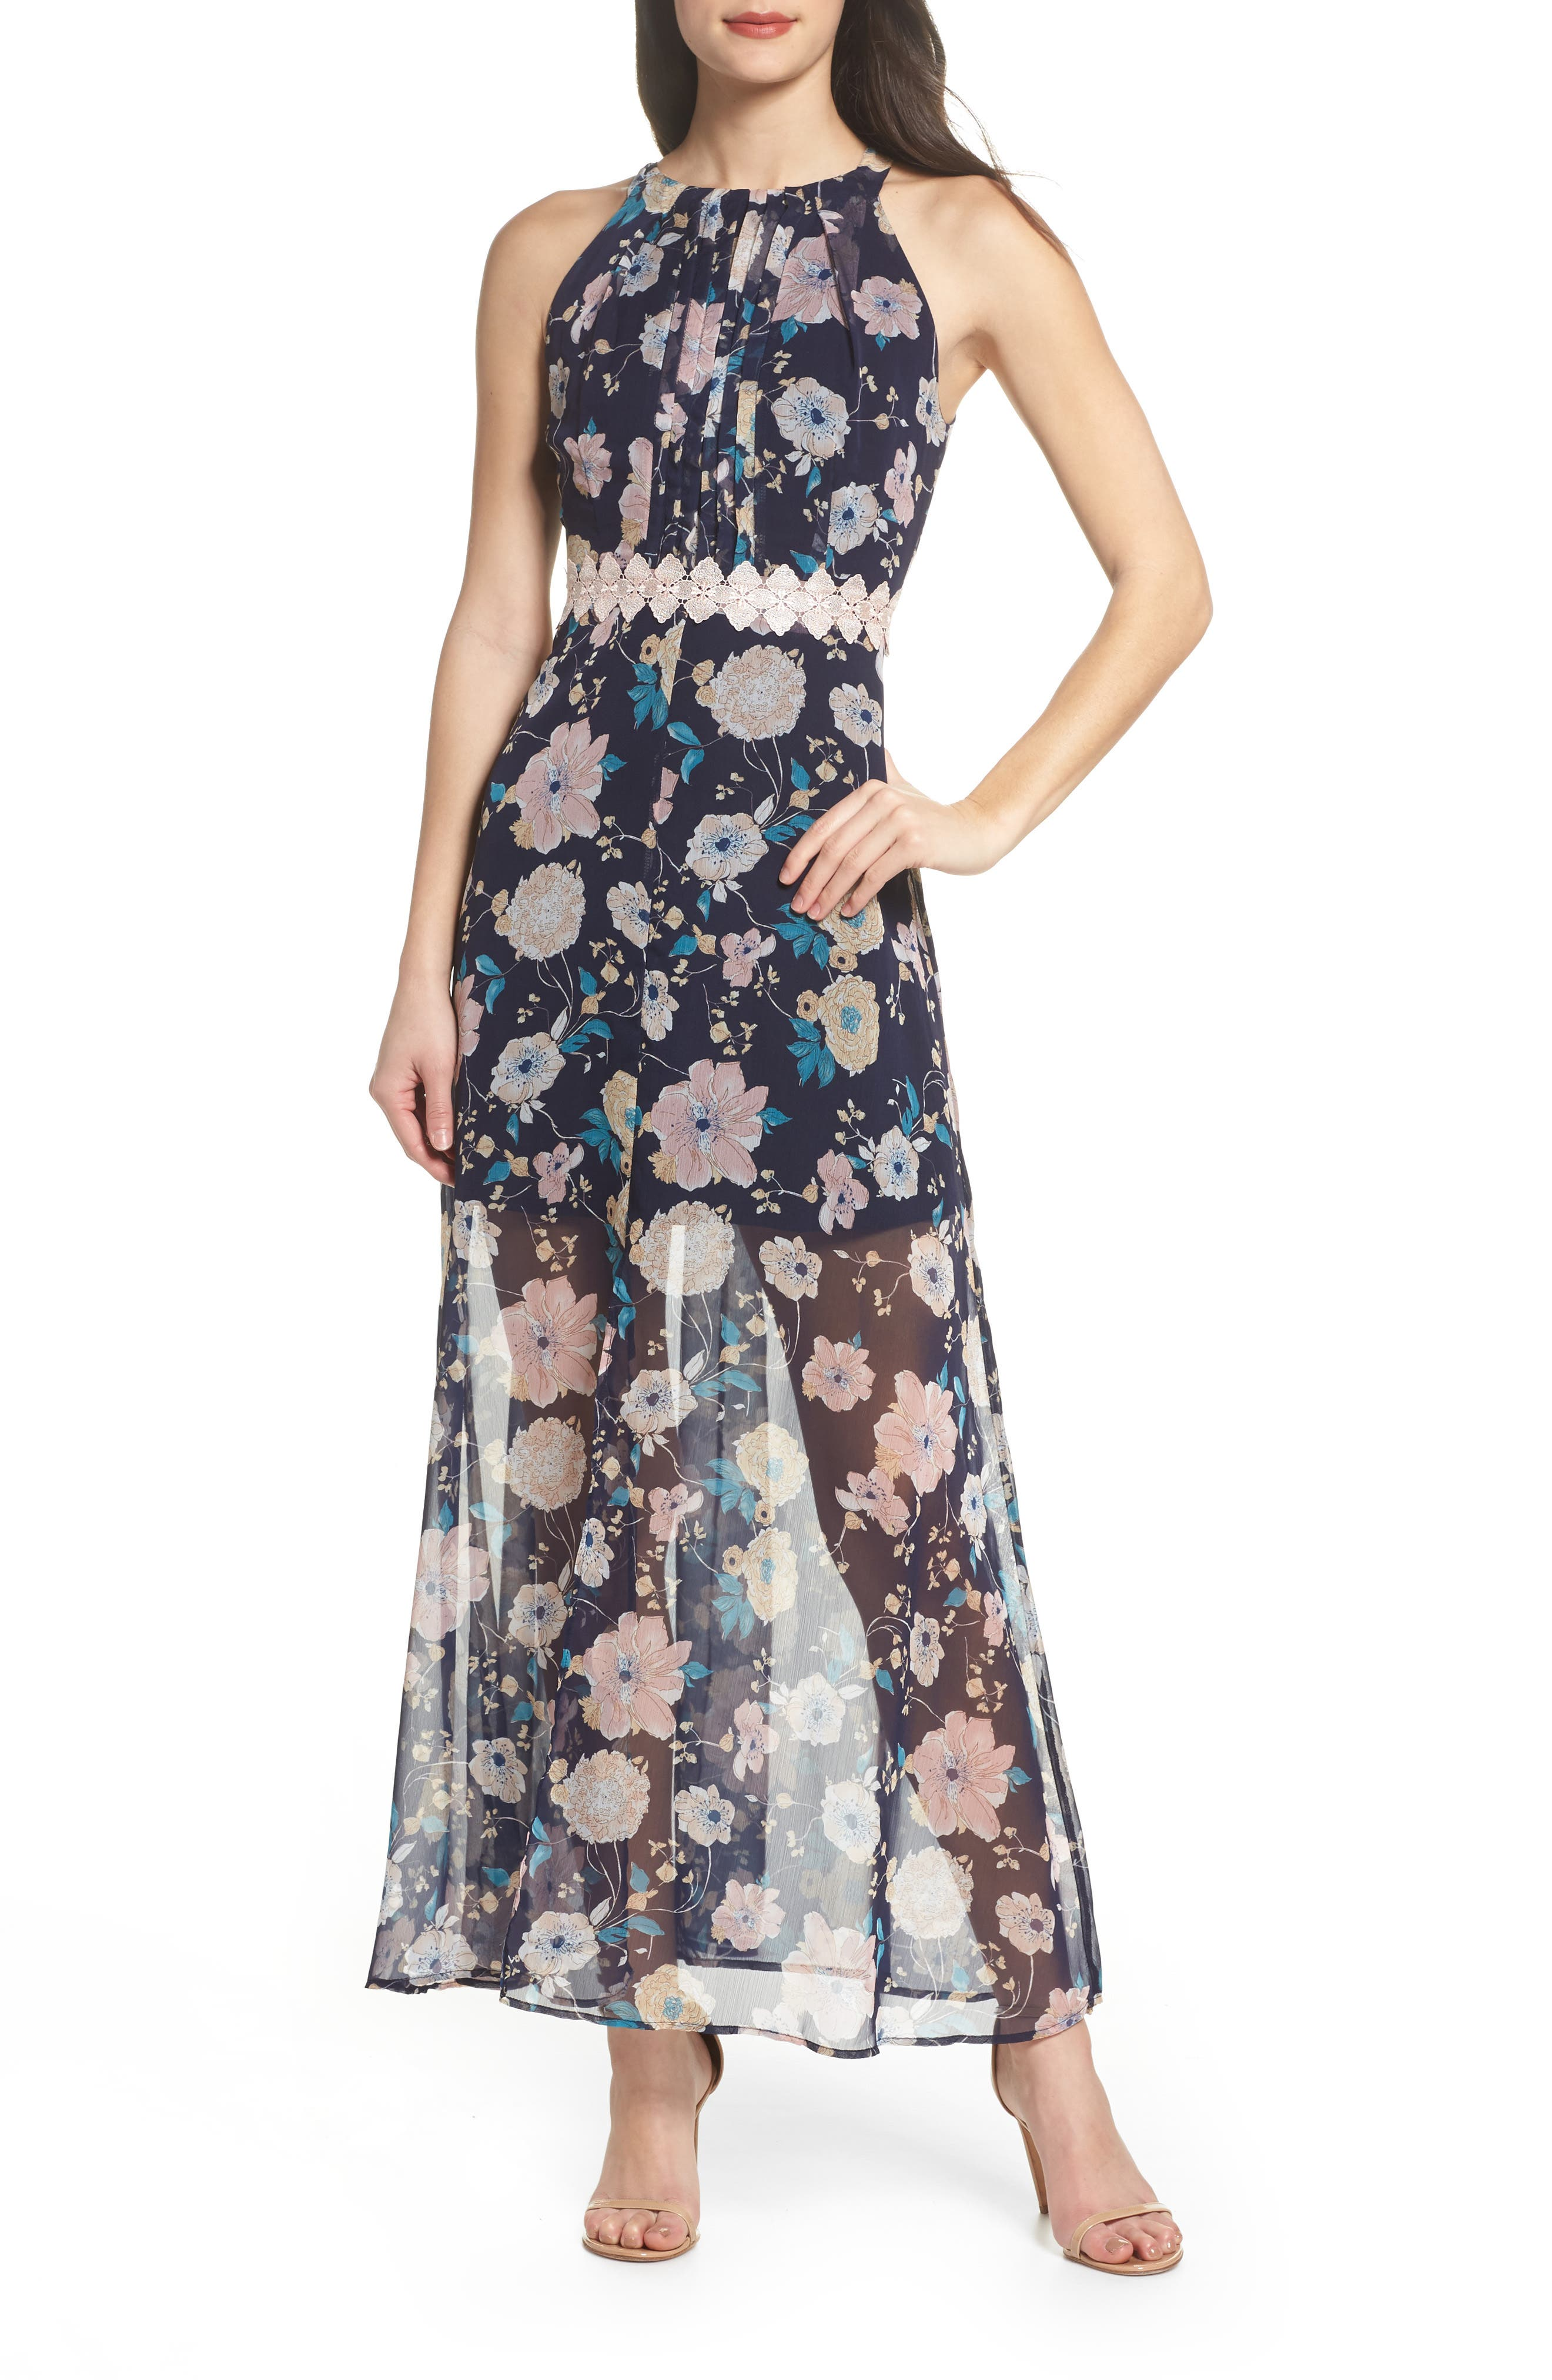 Brylee Floral Print Maxi Dress,                             Main thumbnail 1, color,                             Brylee Navy Multi